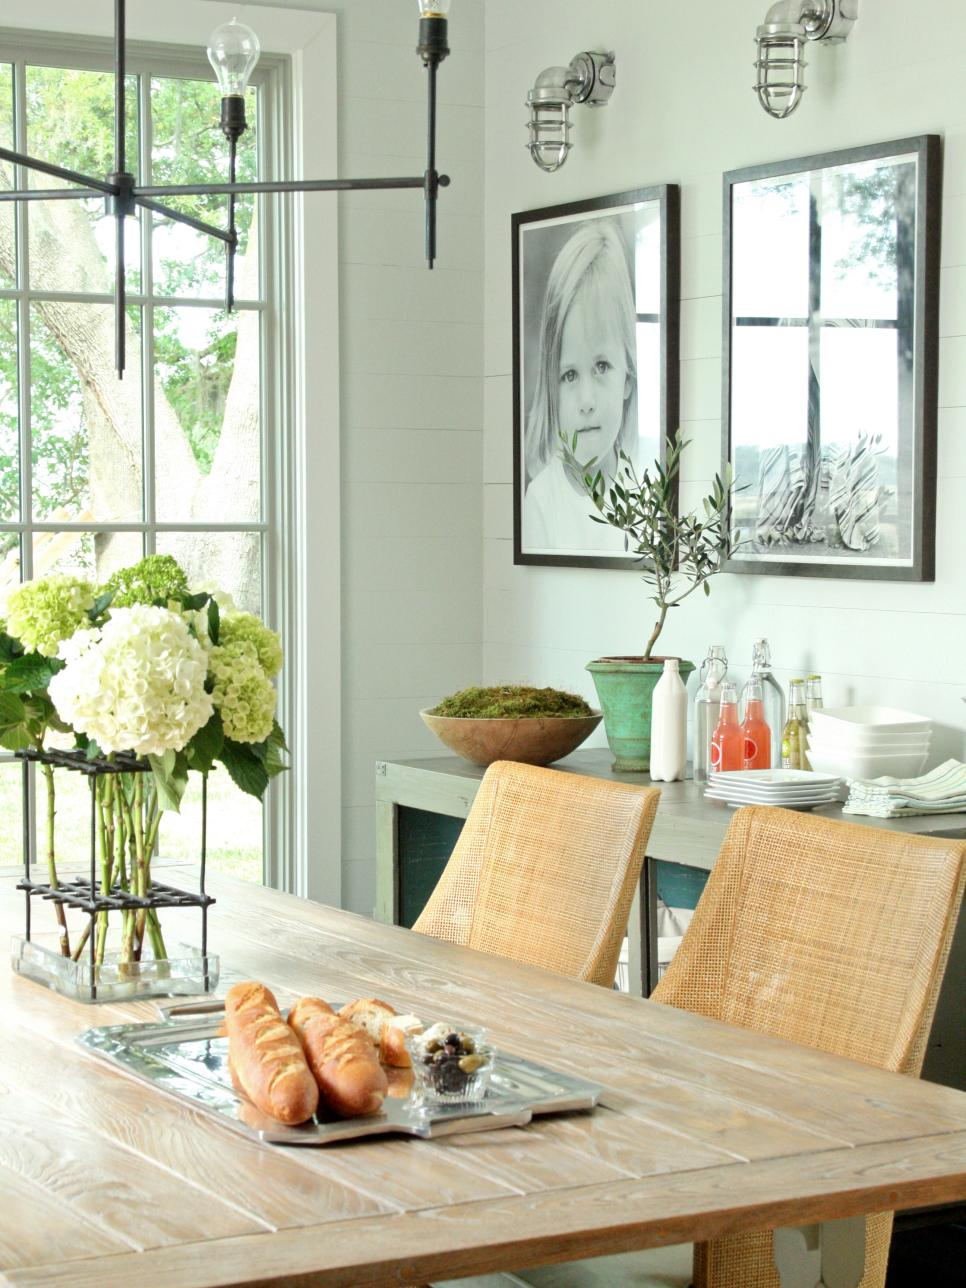 15 dining room decorating ideas hgtv - Dining design ideas ...